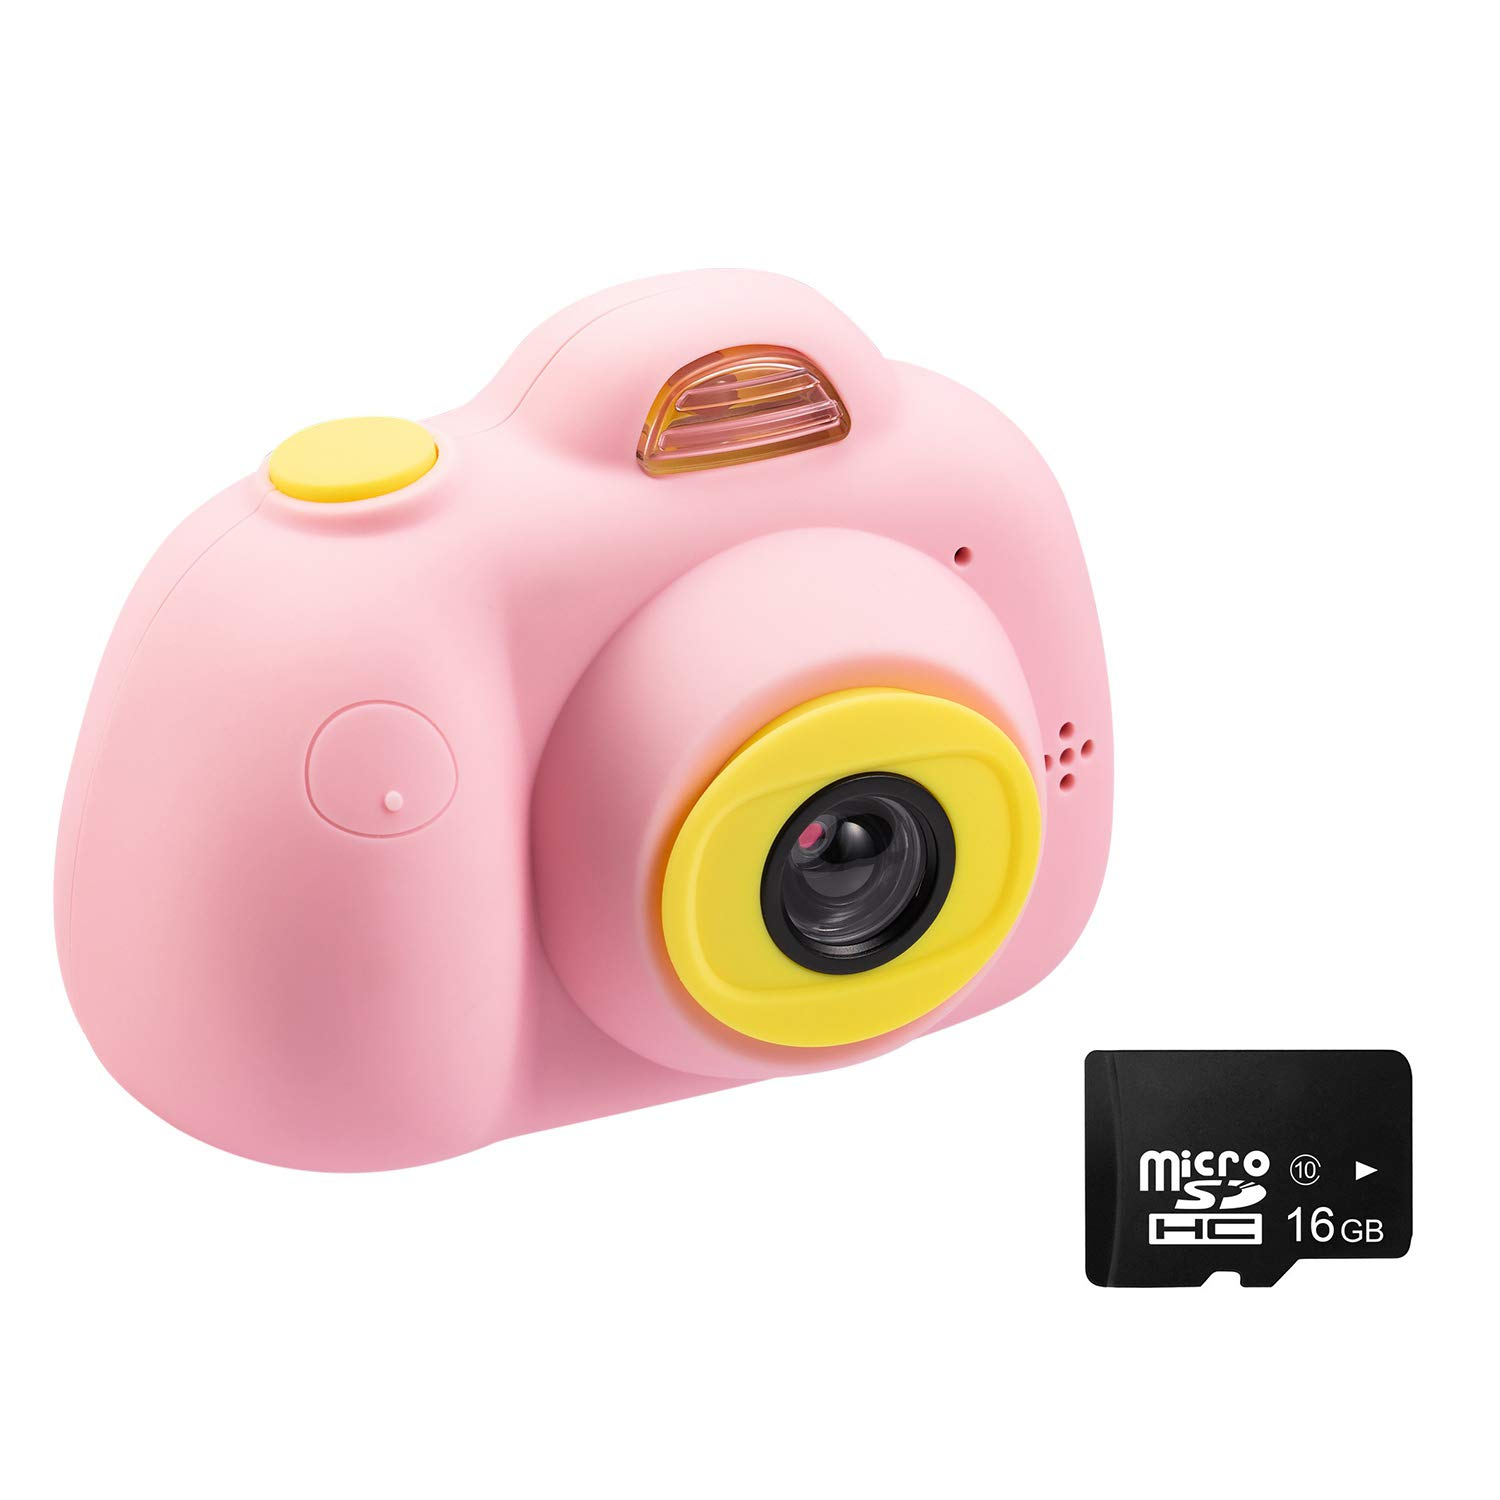 Abdtech Kids Camera Video Cameras Gifts for Girls, Mini Rechargeable Children Shockproof Digital Camcorders Little Girl Toys Gift 8MP with Battery 2 Inch Screen 16GB SD Card ( Pink ) by Abdtech (Image #1)